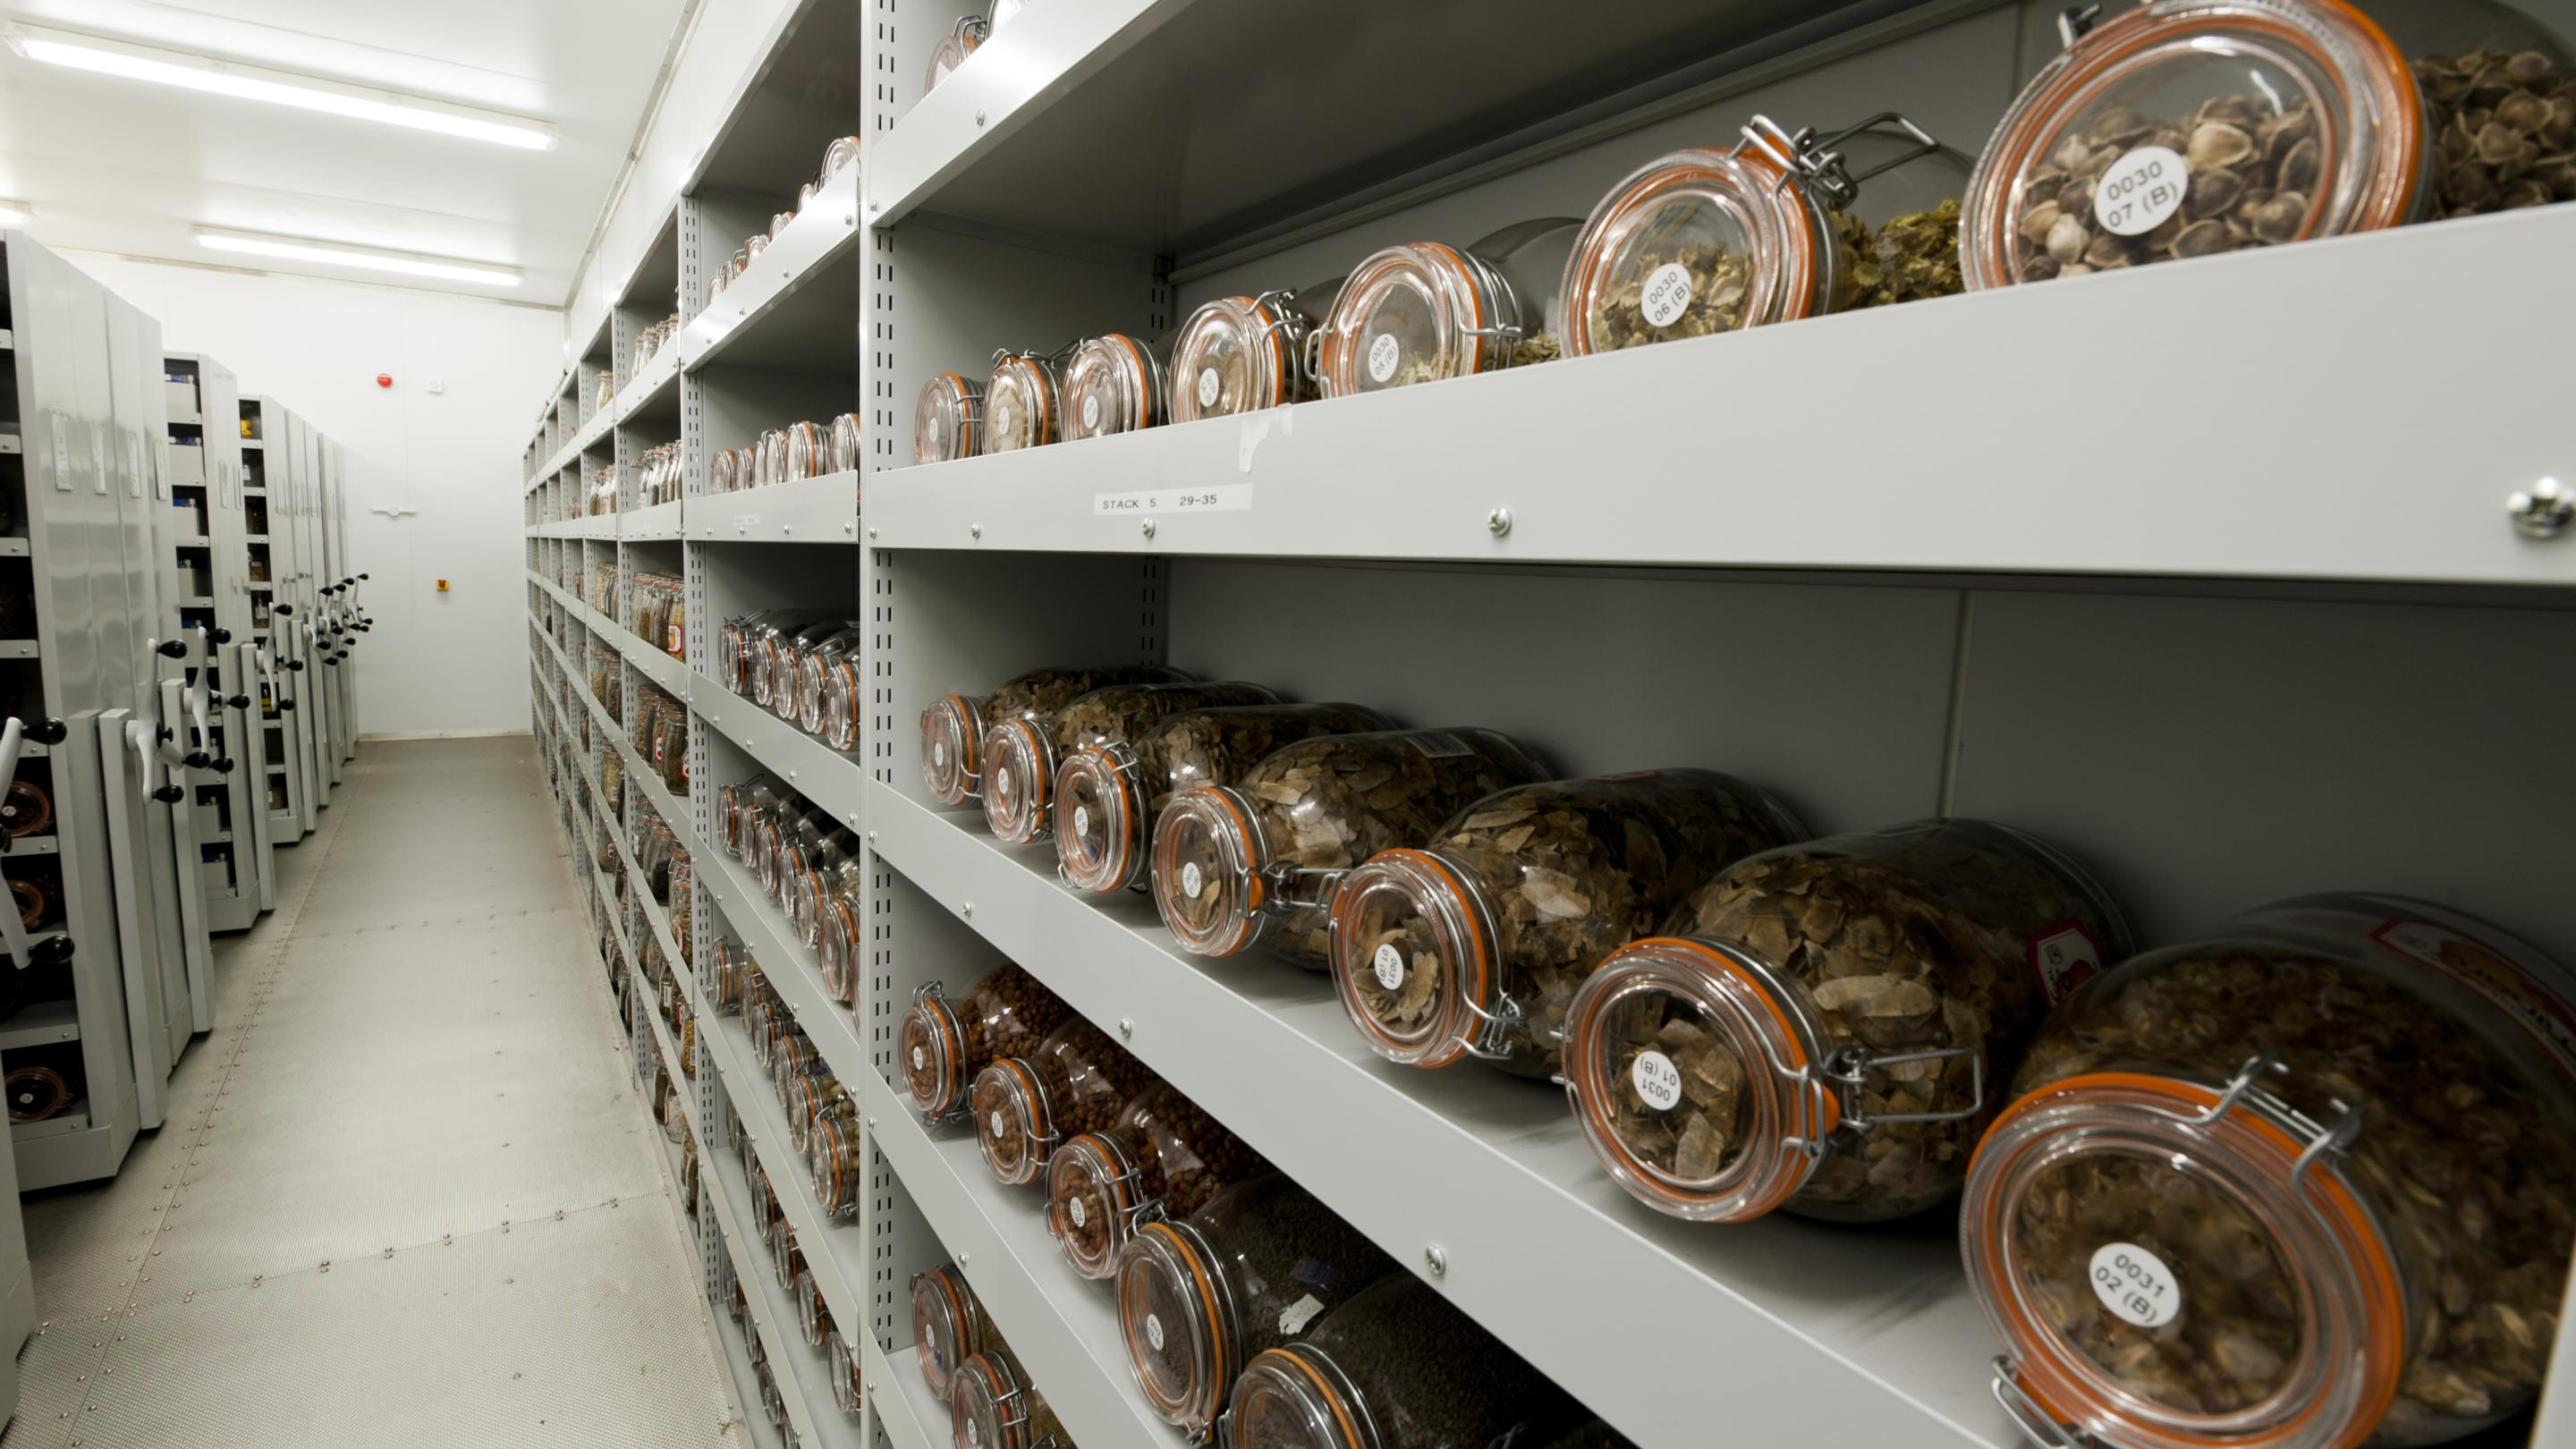 Seeds of crop wild relatives collected around the world are sent to the Millennium Seed Bank at Wakehurst Place in Sussex, to be stored